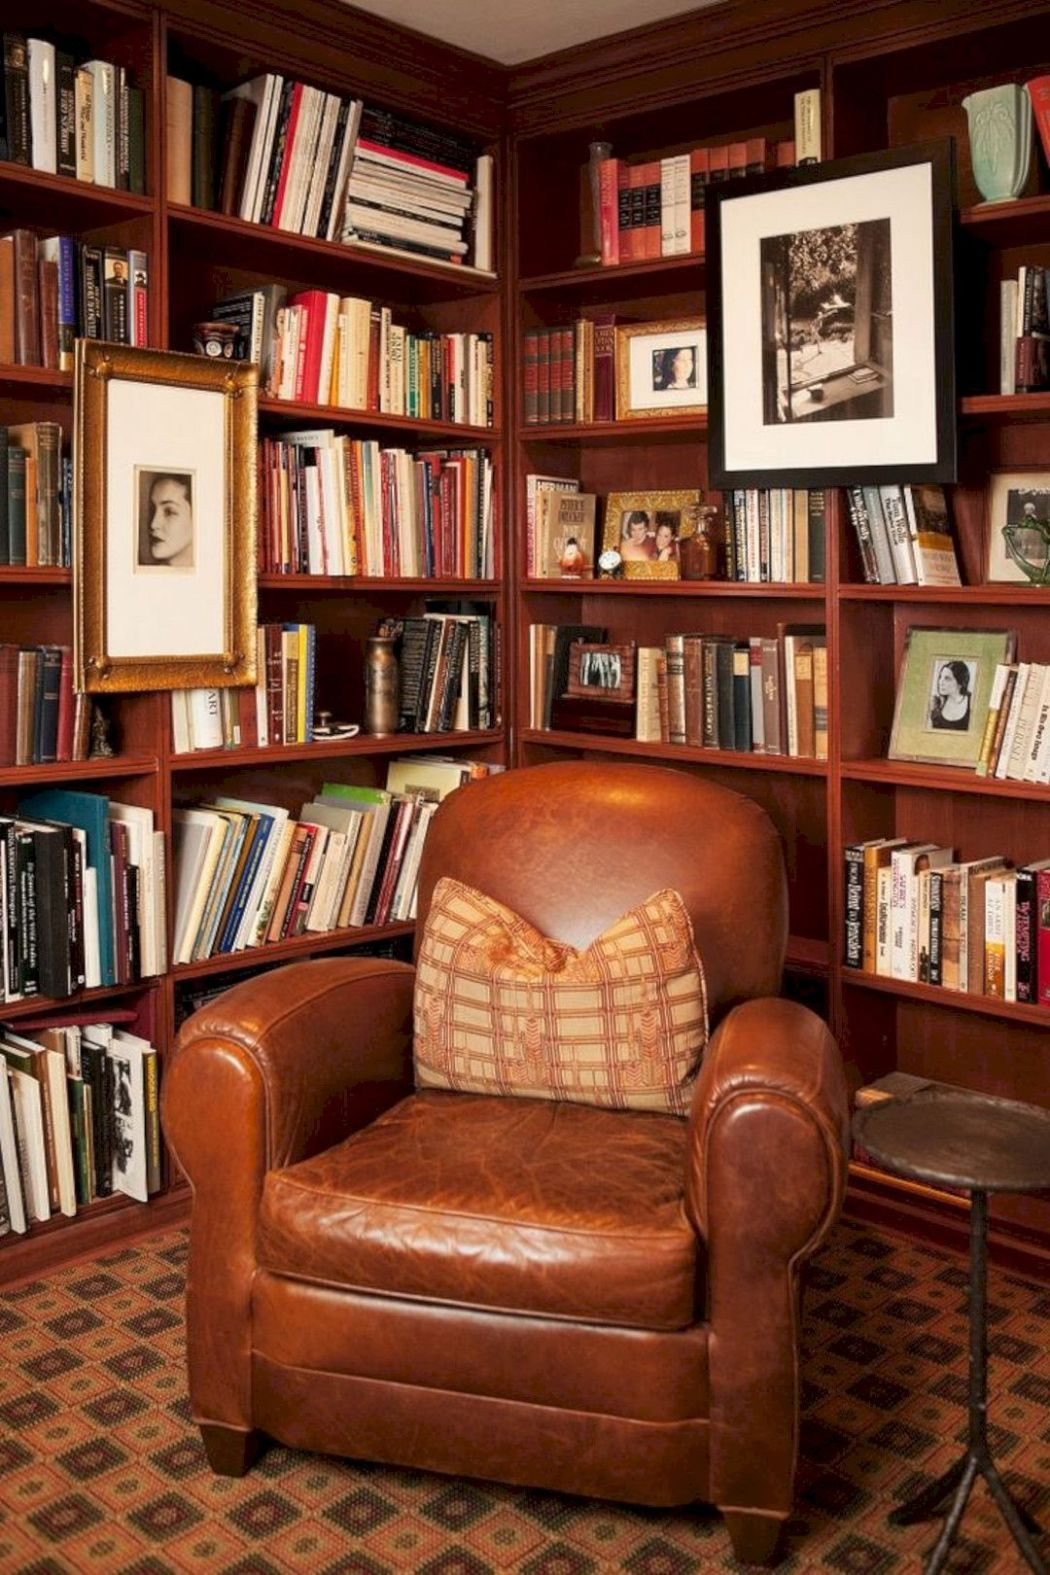 Home Library Room: 10 Timeless Home Decorating Trends That Never Go Out Of